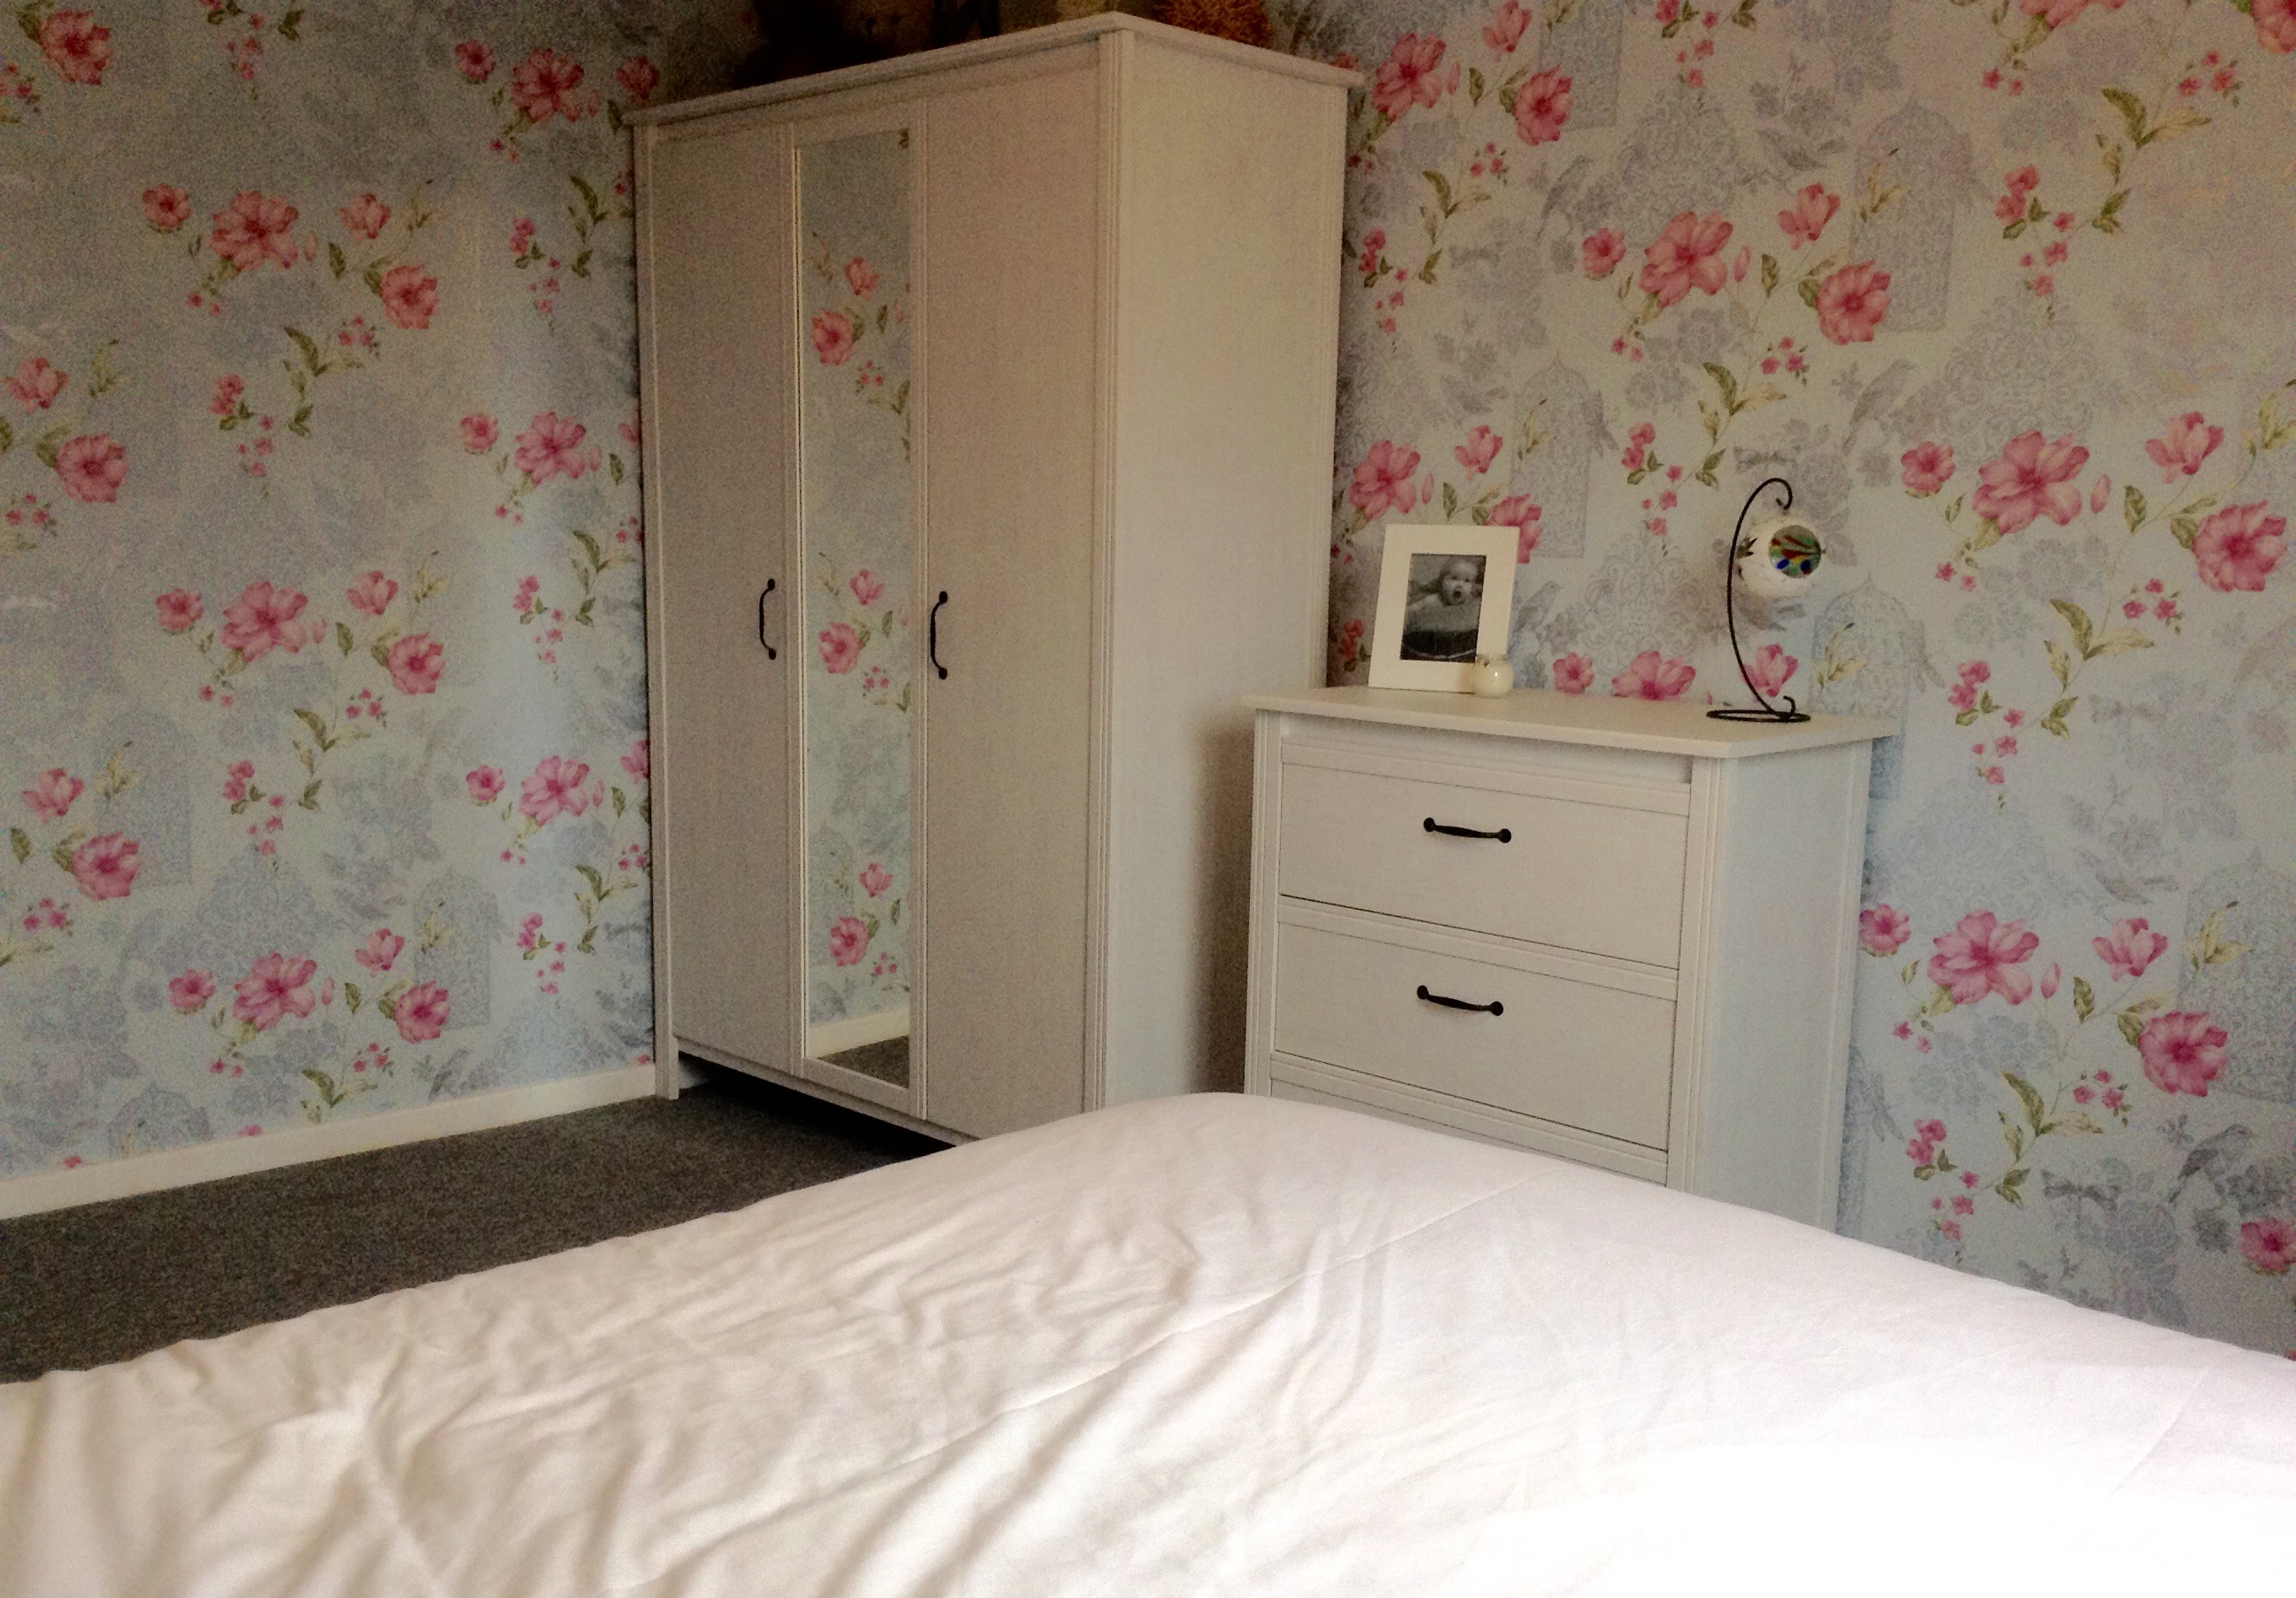 bedroom makeover, crown powder blue and cherry pink floral wallpaper with silver etched birds and glitter details, grey carpet, white ikea furniture